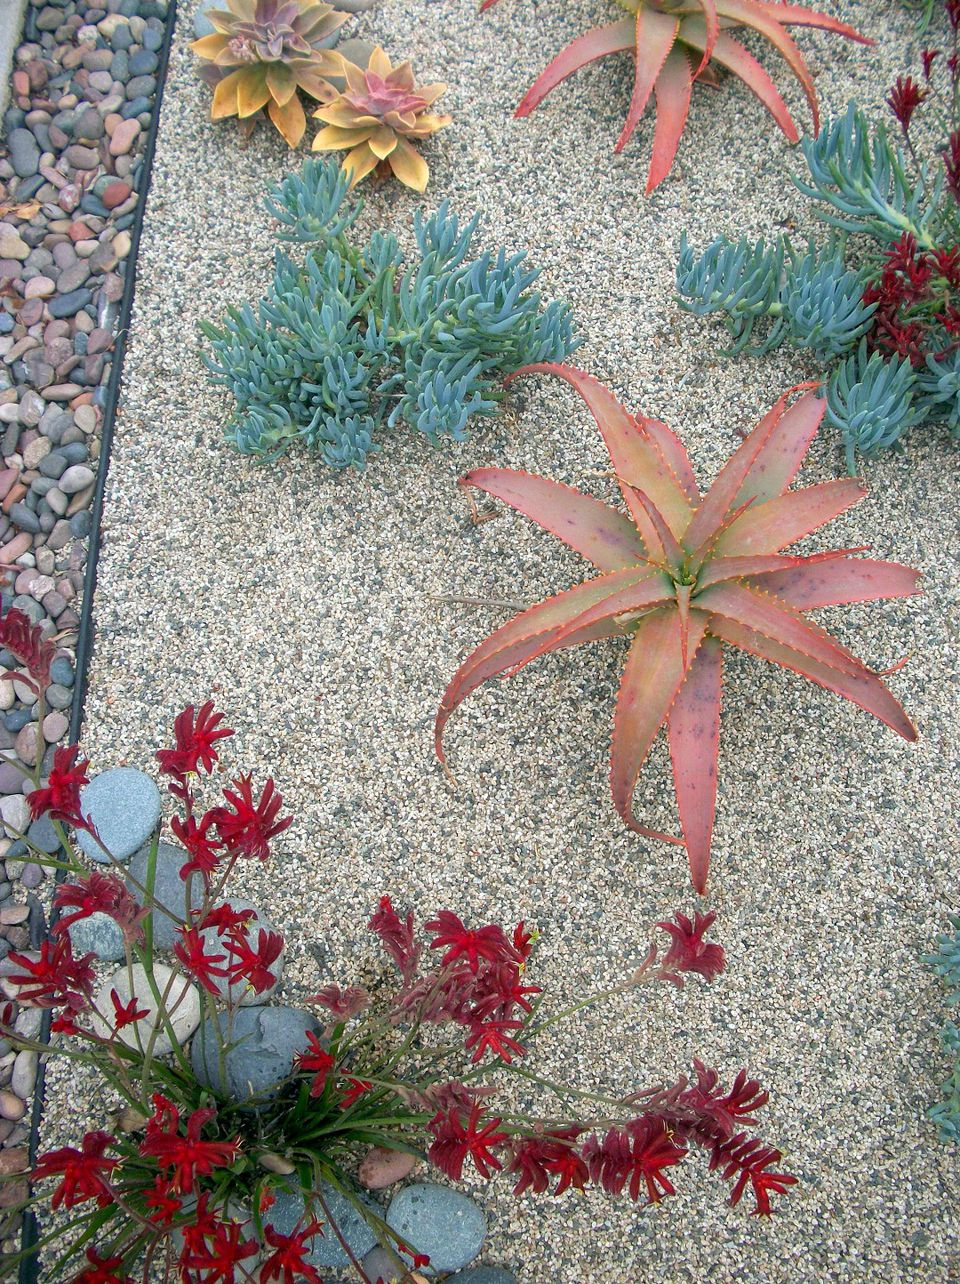 dry garden succulents wordless wednesday venice beach